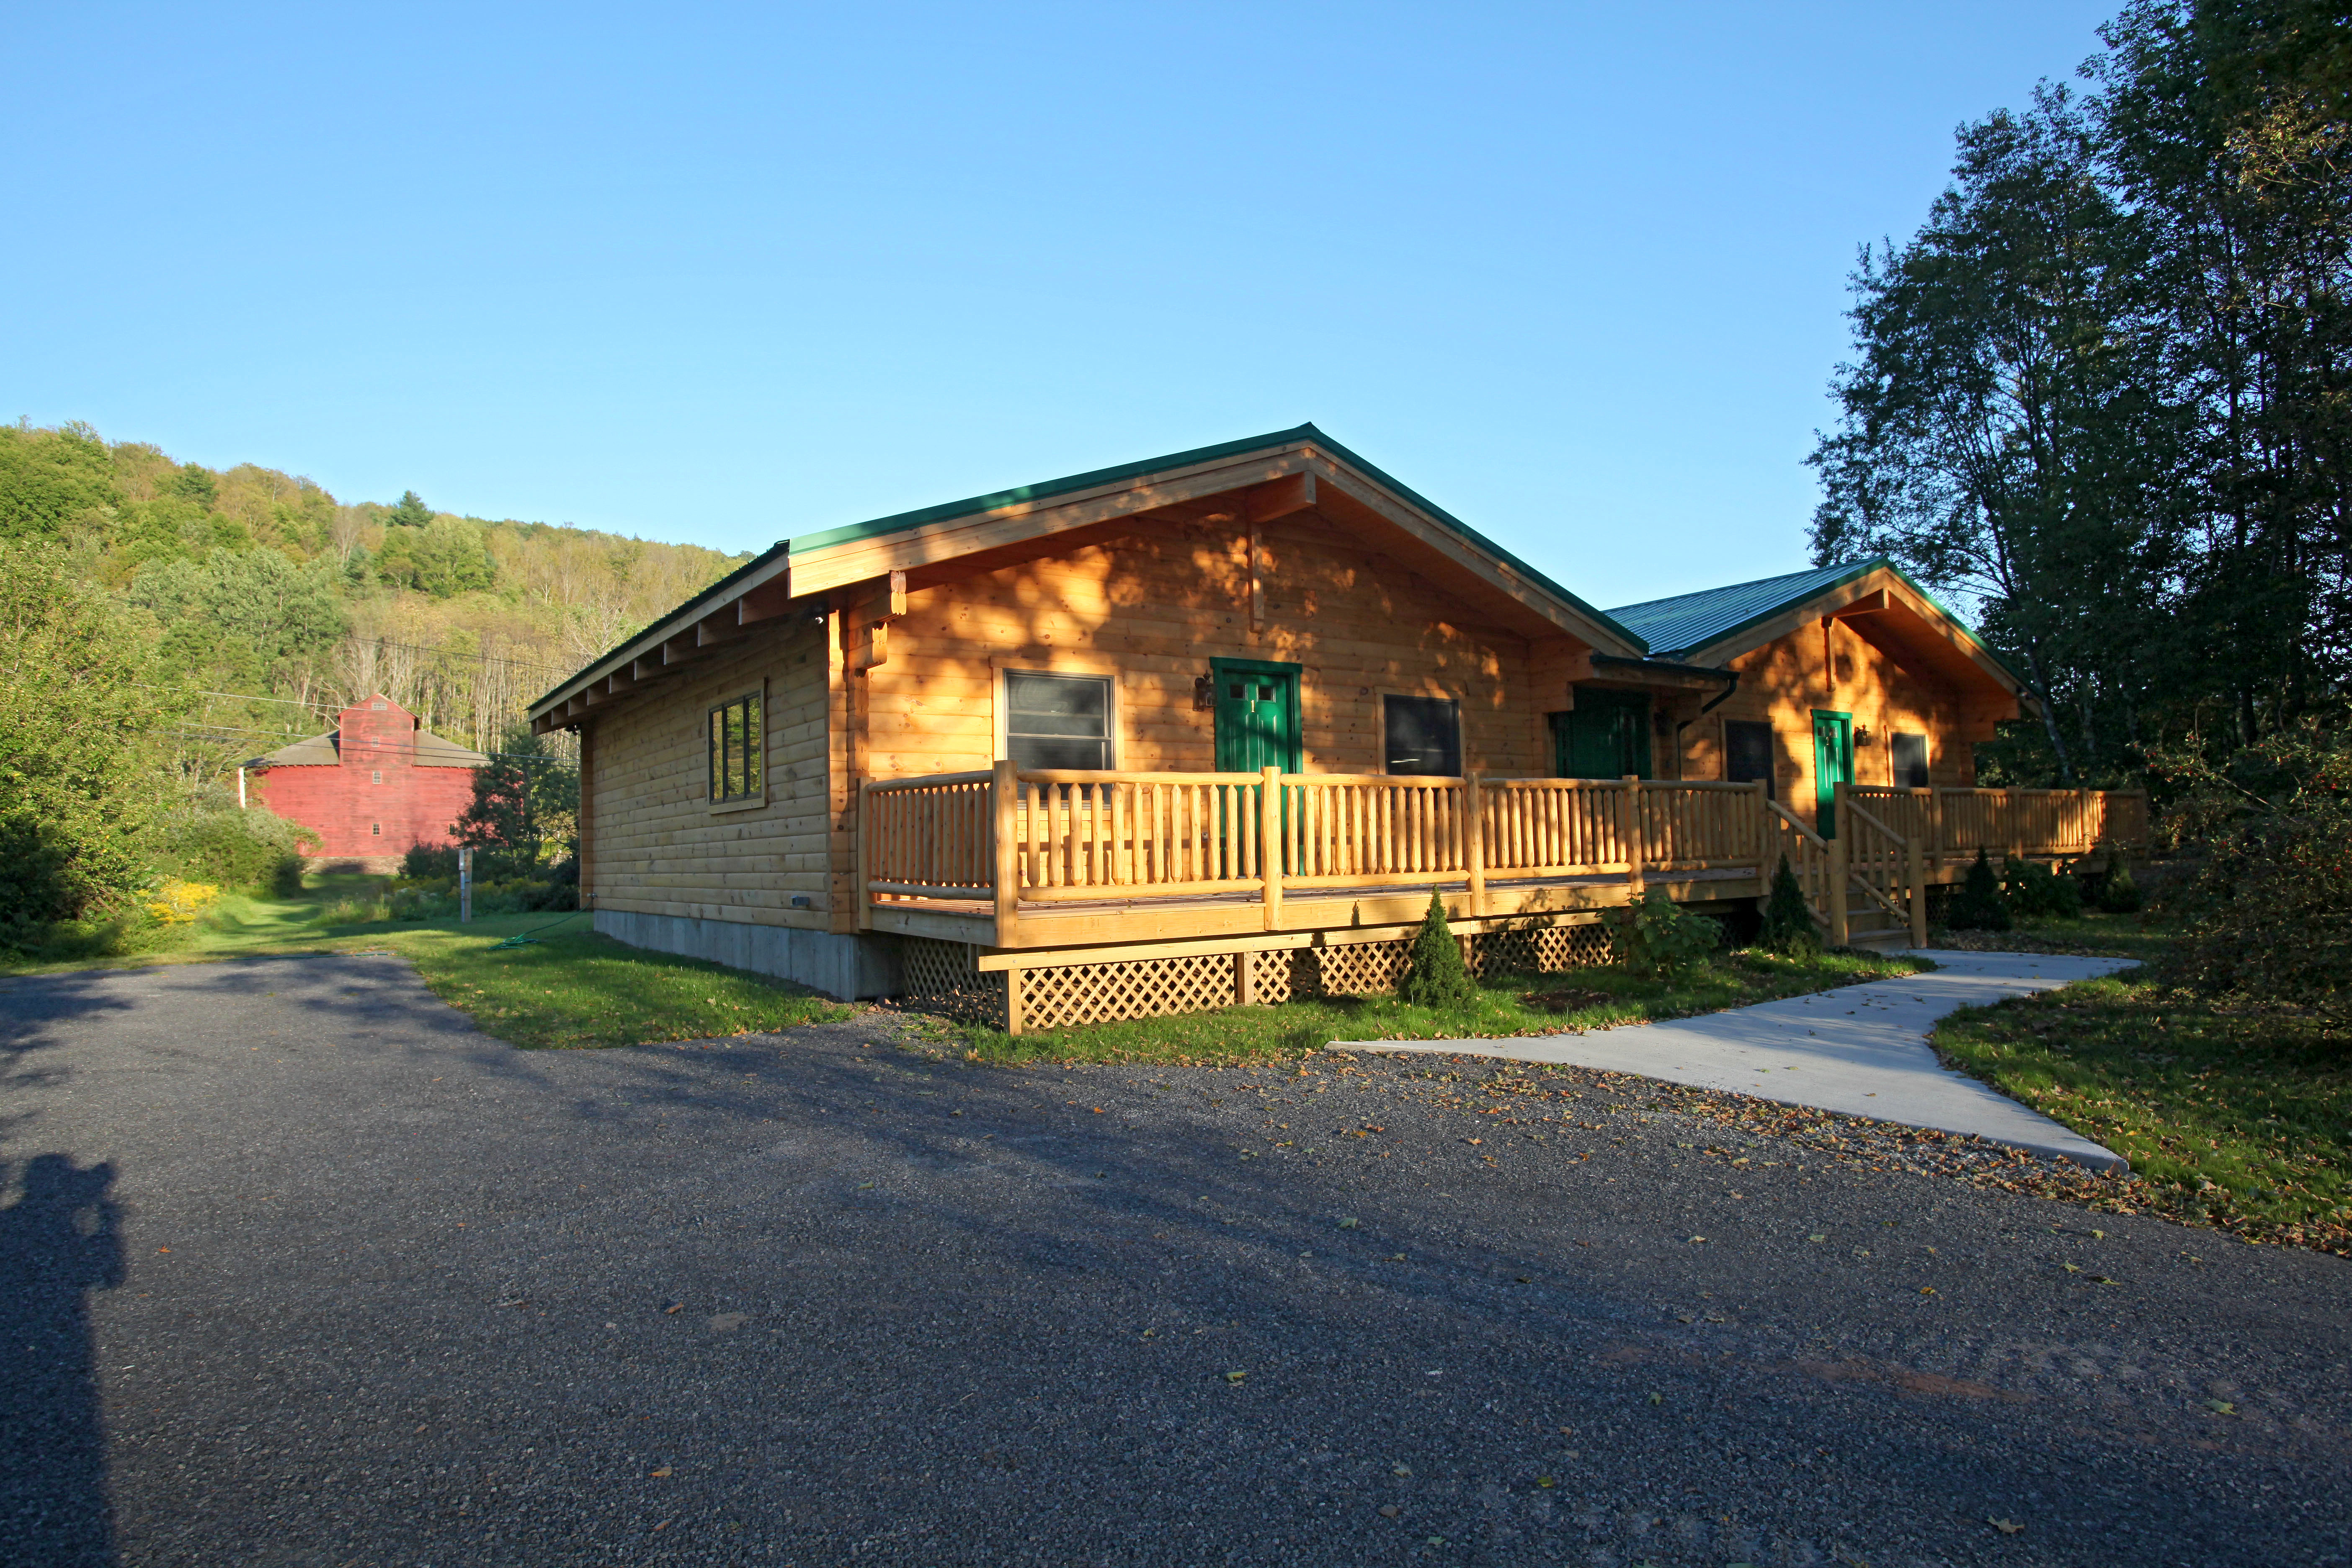 4 Bedrooms / 2 Bathrooms - Est. $3,662.00 / Month* for rent in Halcottsville, NY